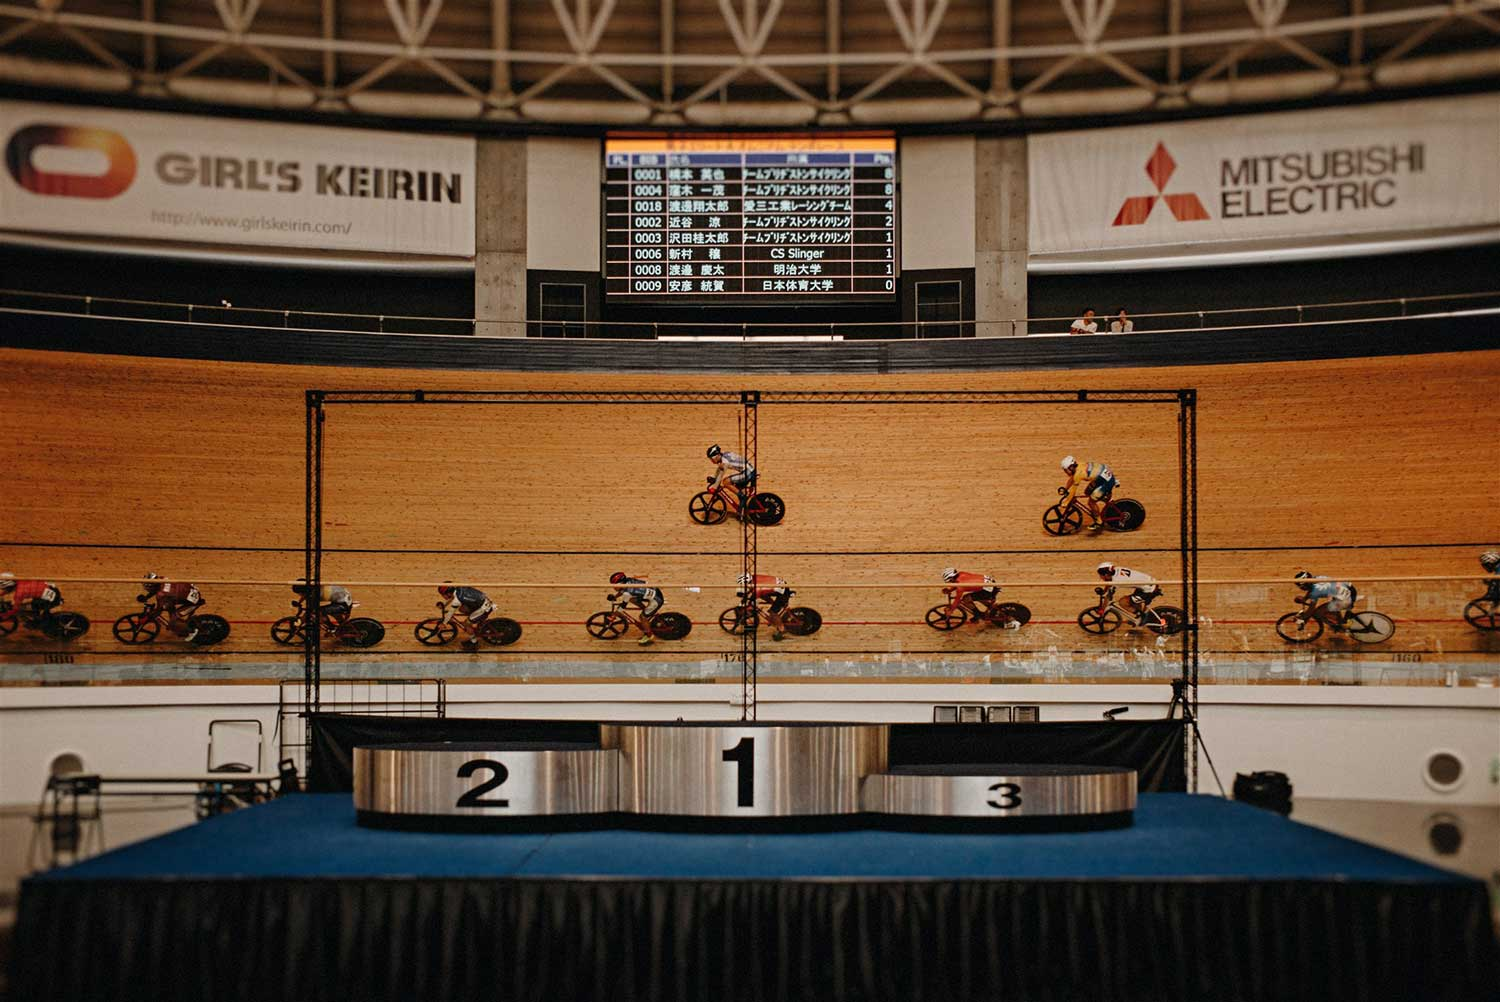 Japanese national track cycling championships event goes on behind podium